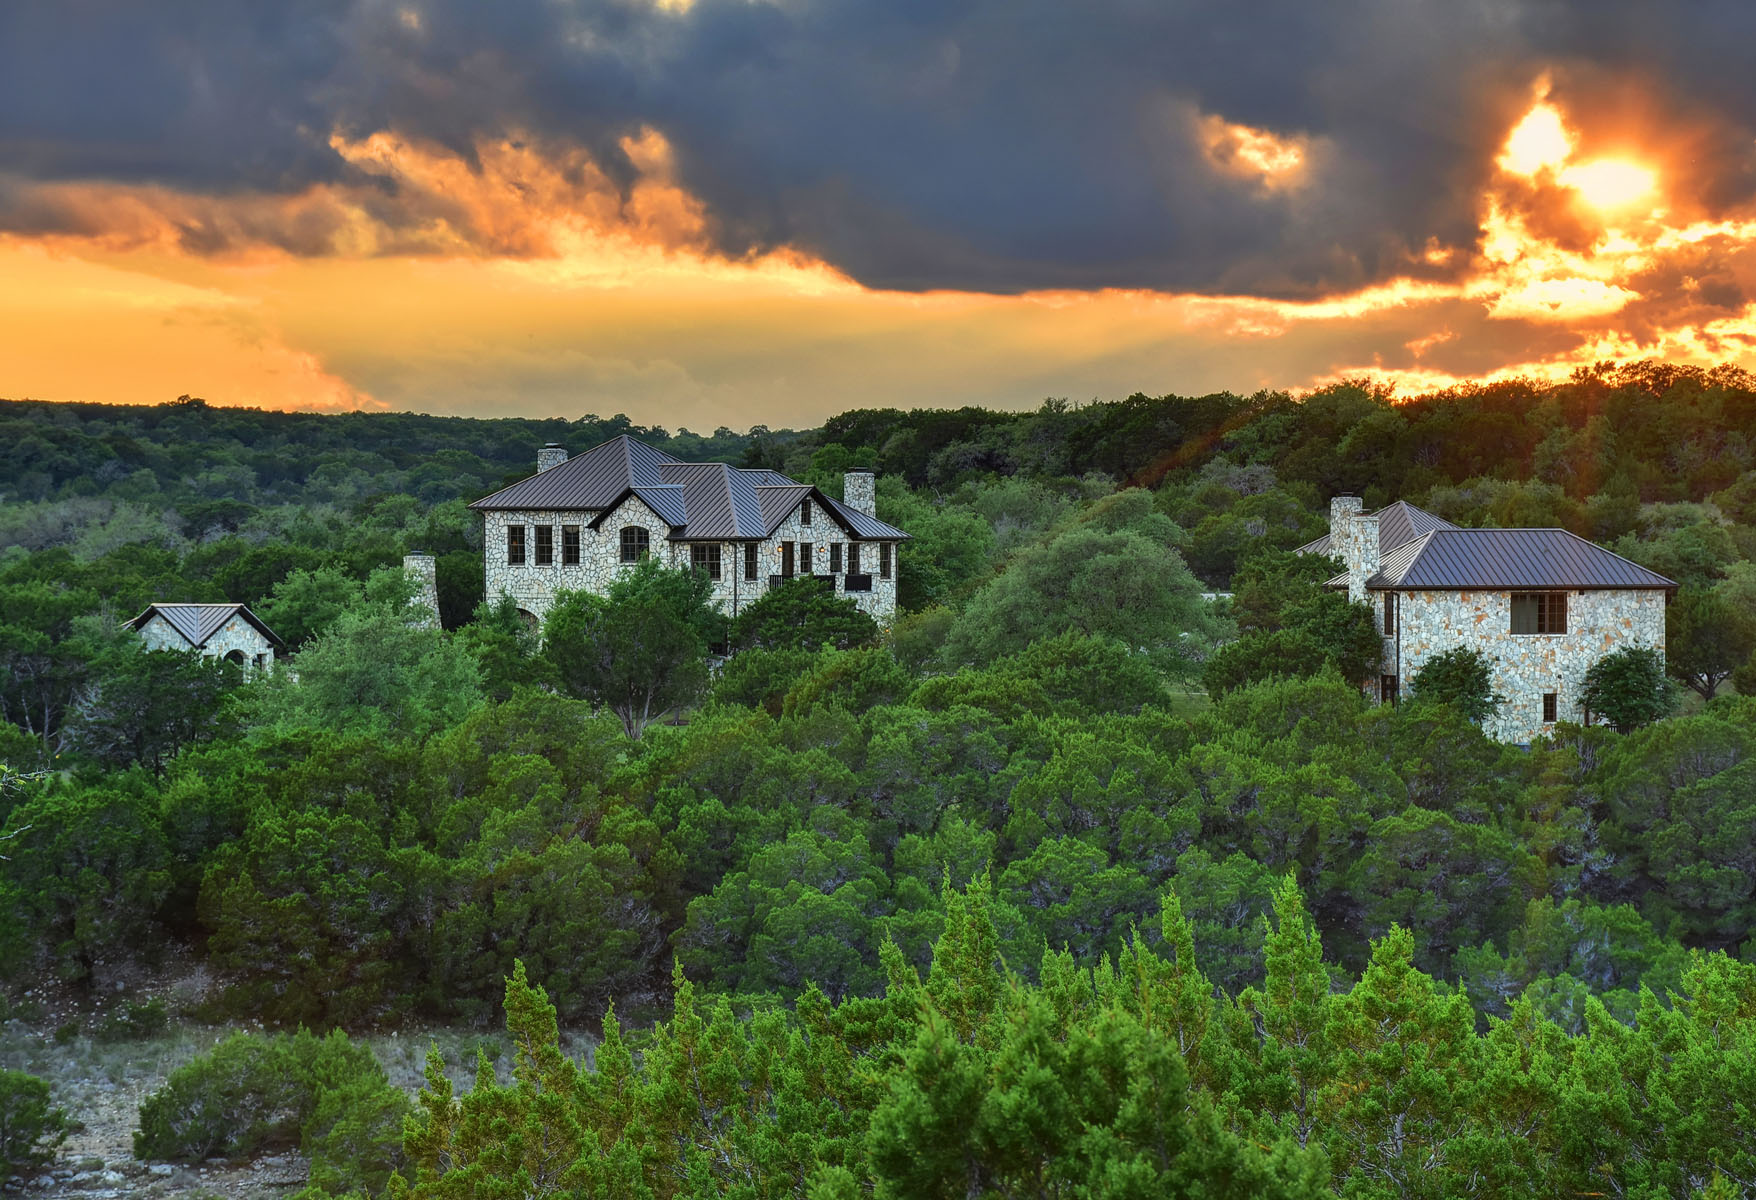 Maison unifamiliale pour l Vente à Luxurious Ranch Estate in Lakefront Community 206 S Angel Light Dr Spicewood, Texas, 78669 États-Unis